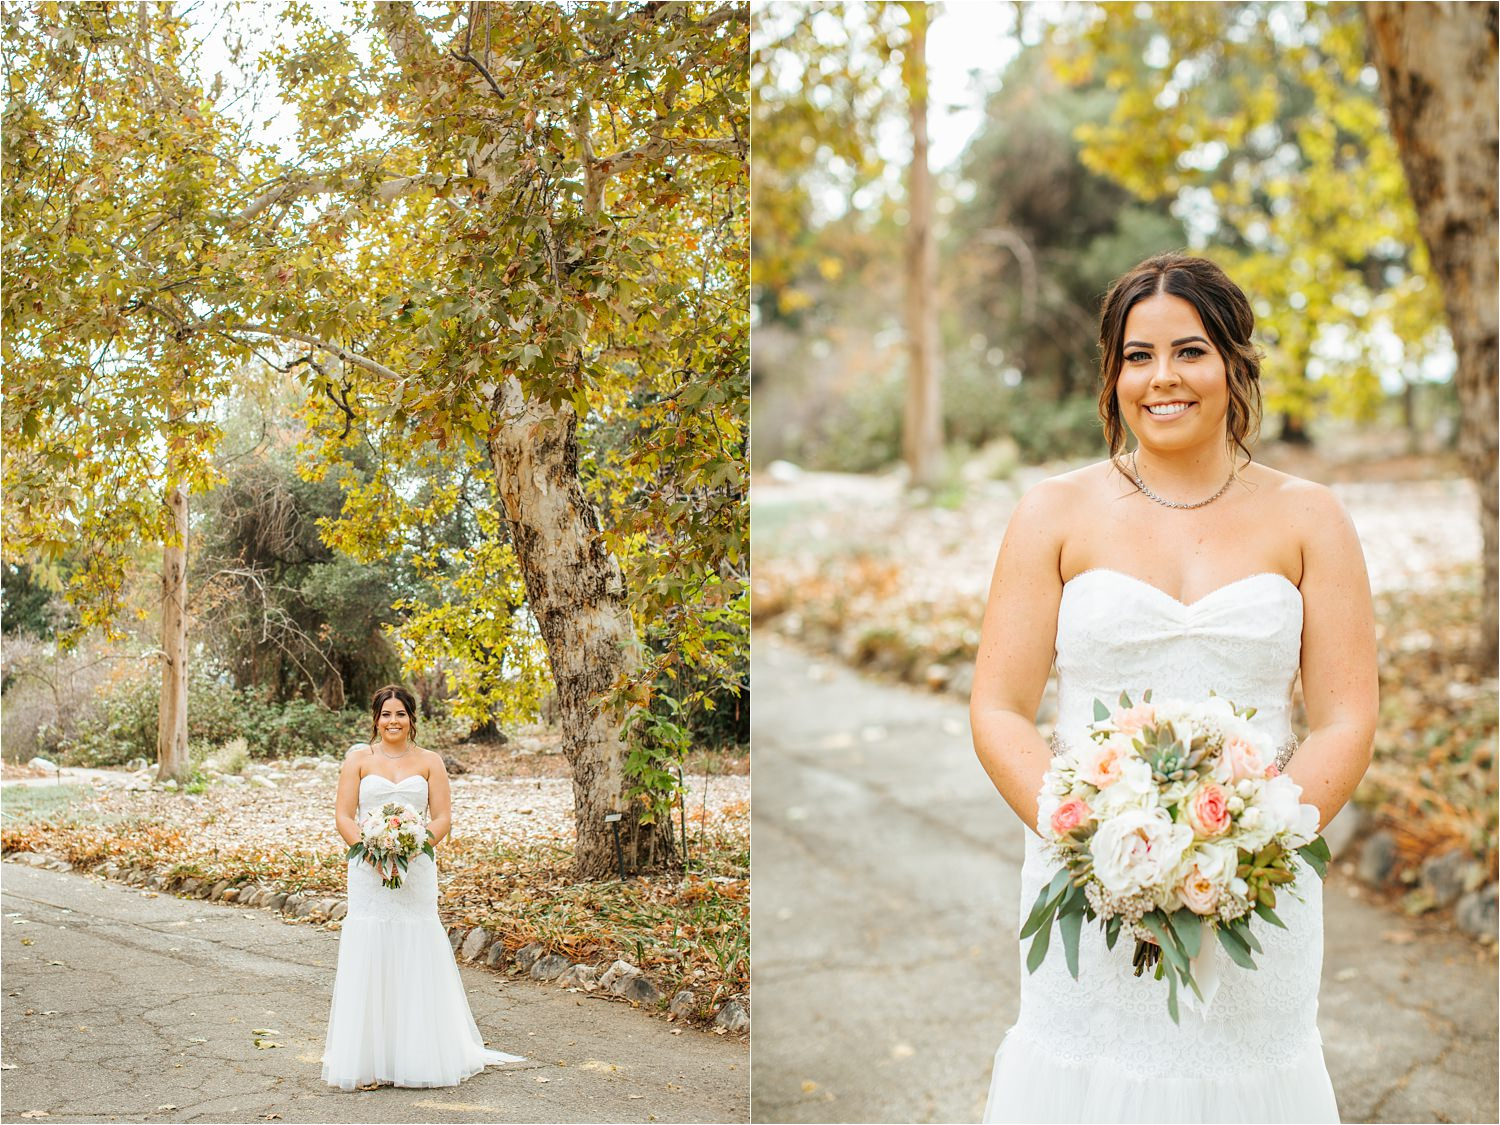 Beautiful Fall Bride - October Bride - Claremont Wedding Photographer - http://brittneyhannonphotography.com